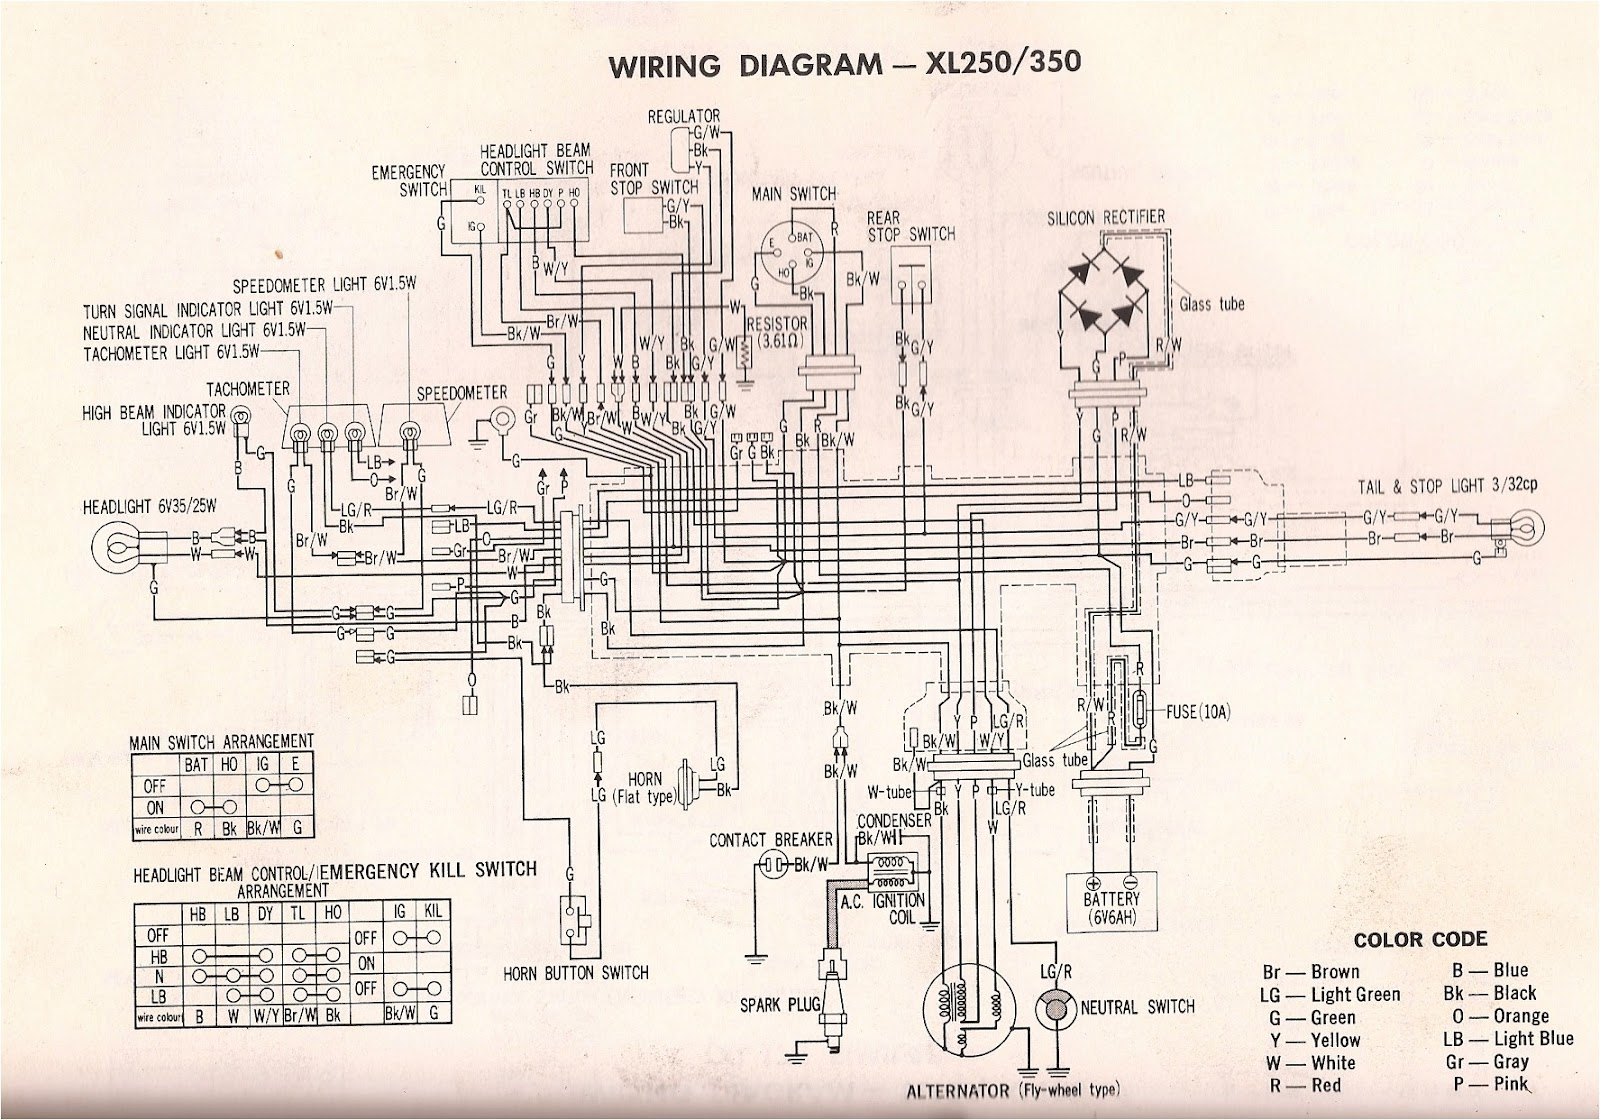 72 Cb175 Wiring Diagram Product Diagrams R4l Xl350 And Xl250 Rh Ramen4life Blogspot Com 1974 Cb200 Honda